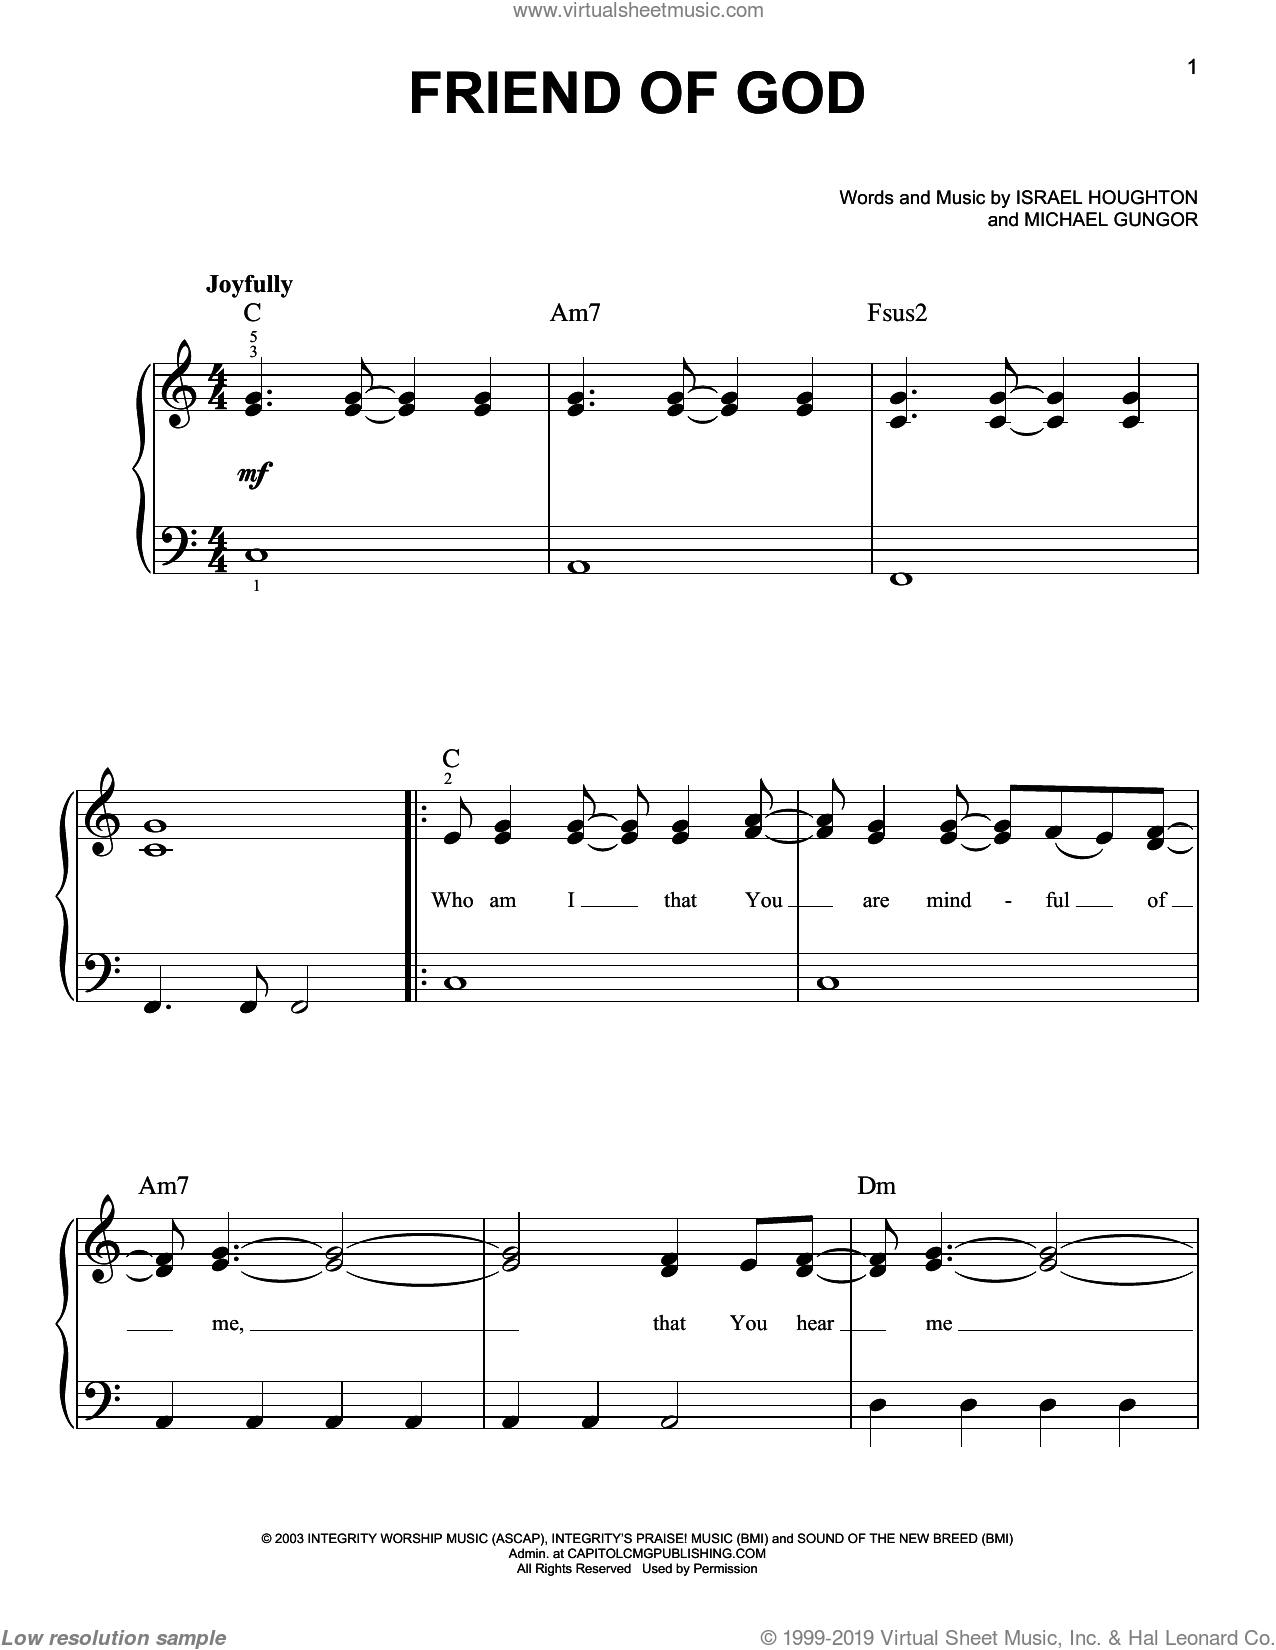 Friend Of God sheet music for piano solo by Israel Houghton and Michael Gungor, easy skill level